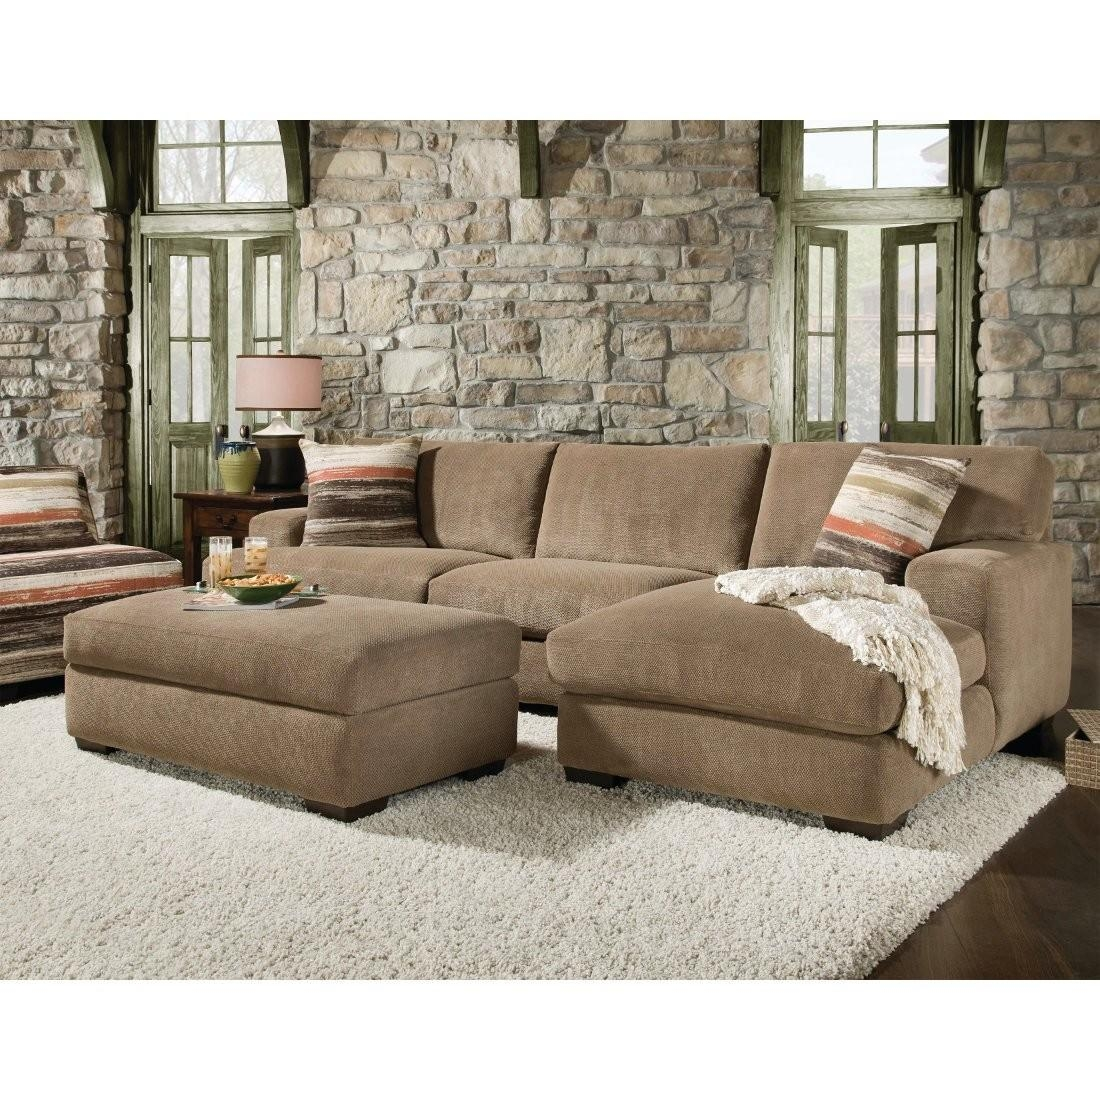 Small Sectional Sofa With Chaise And Ottoman | Tehranmix Decoration In Sectional With Ottoman And Chaise (Image 18 of 20)